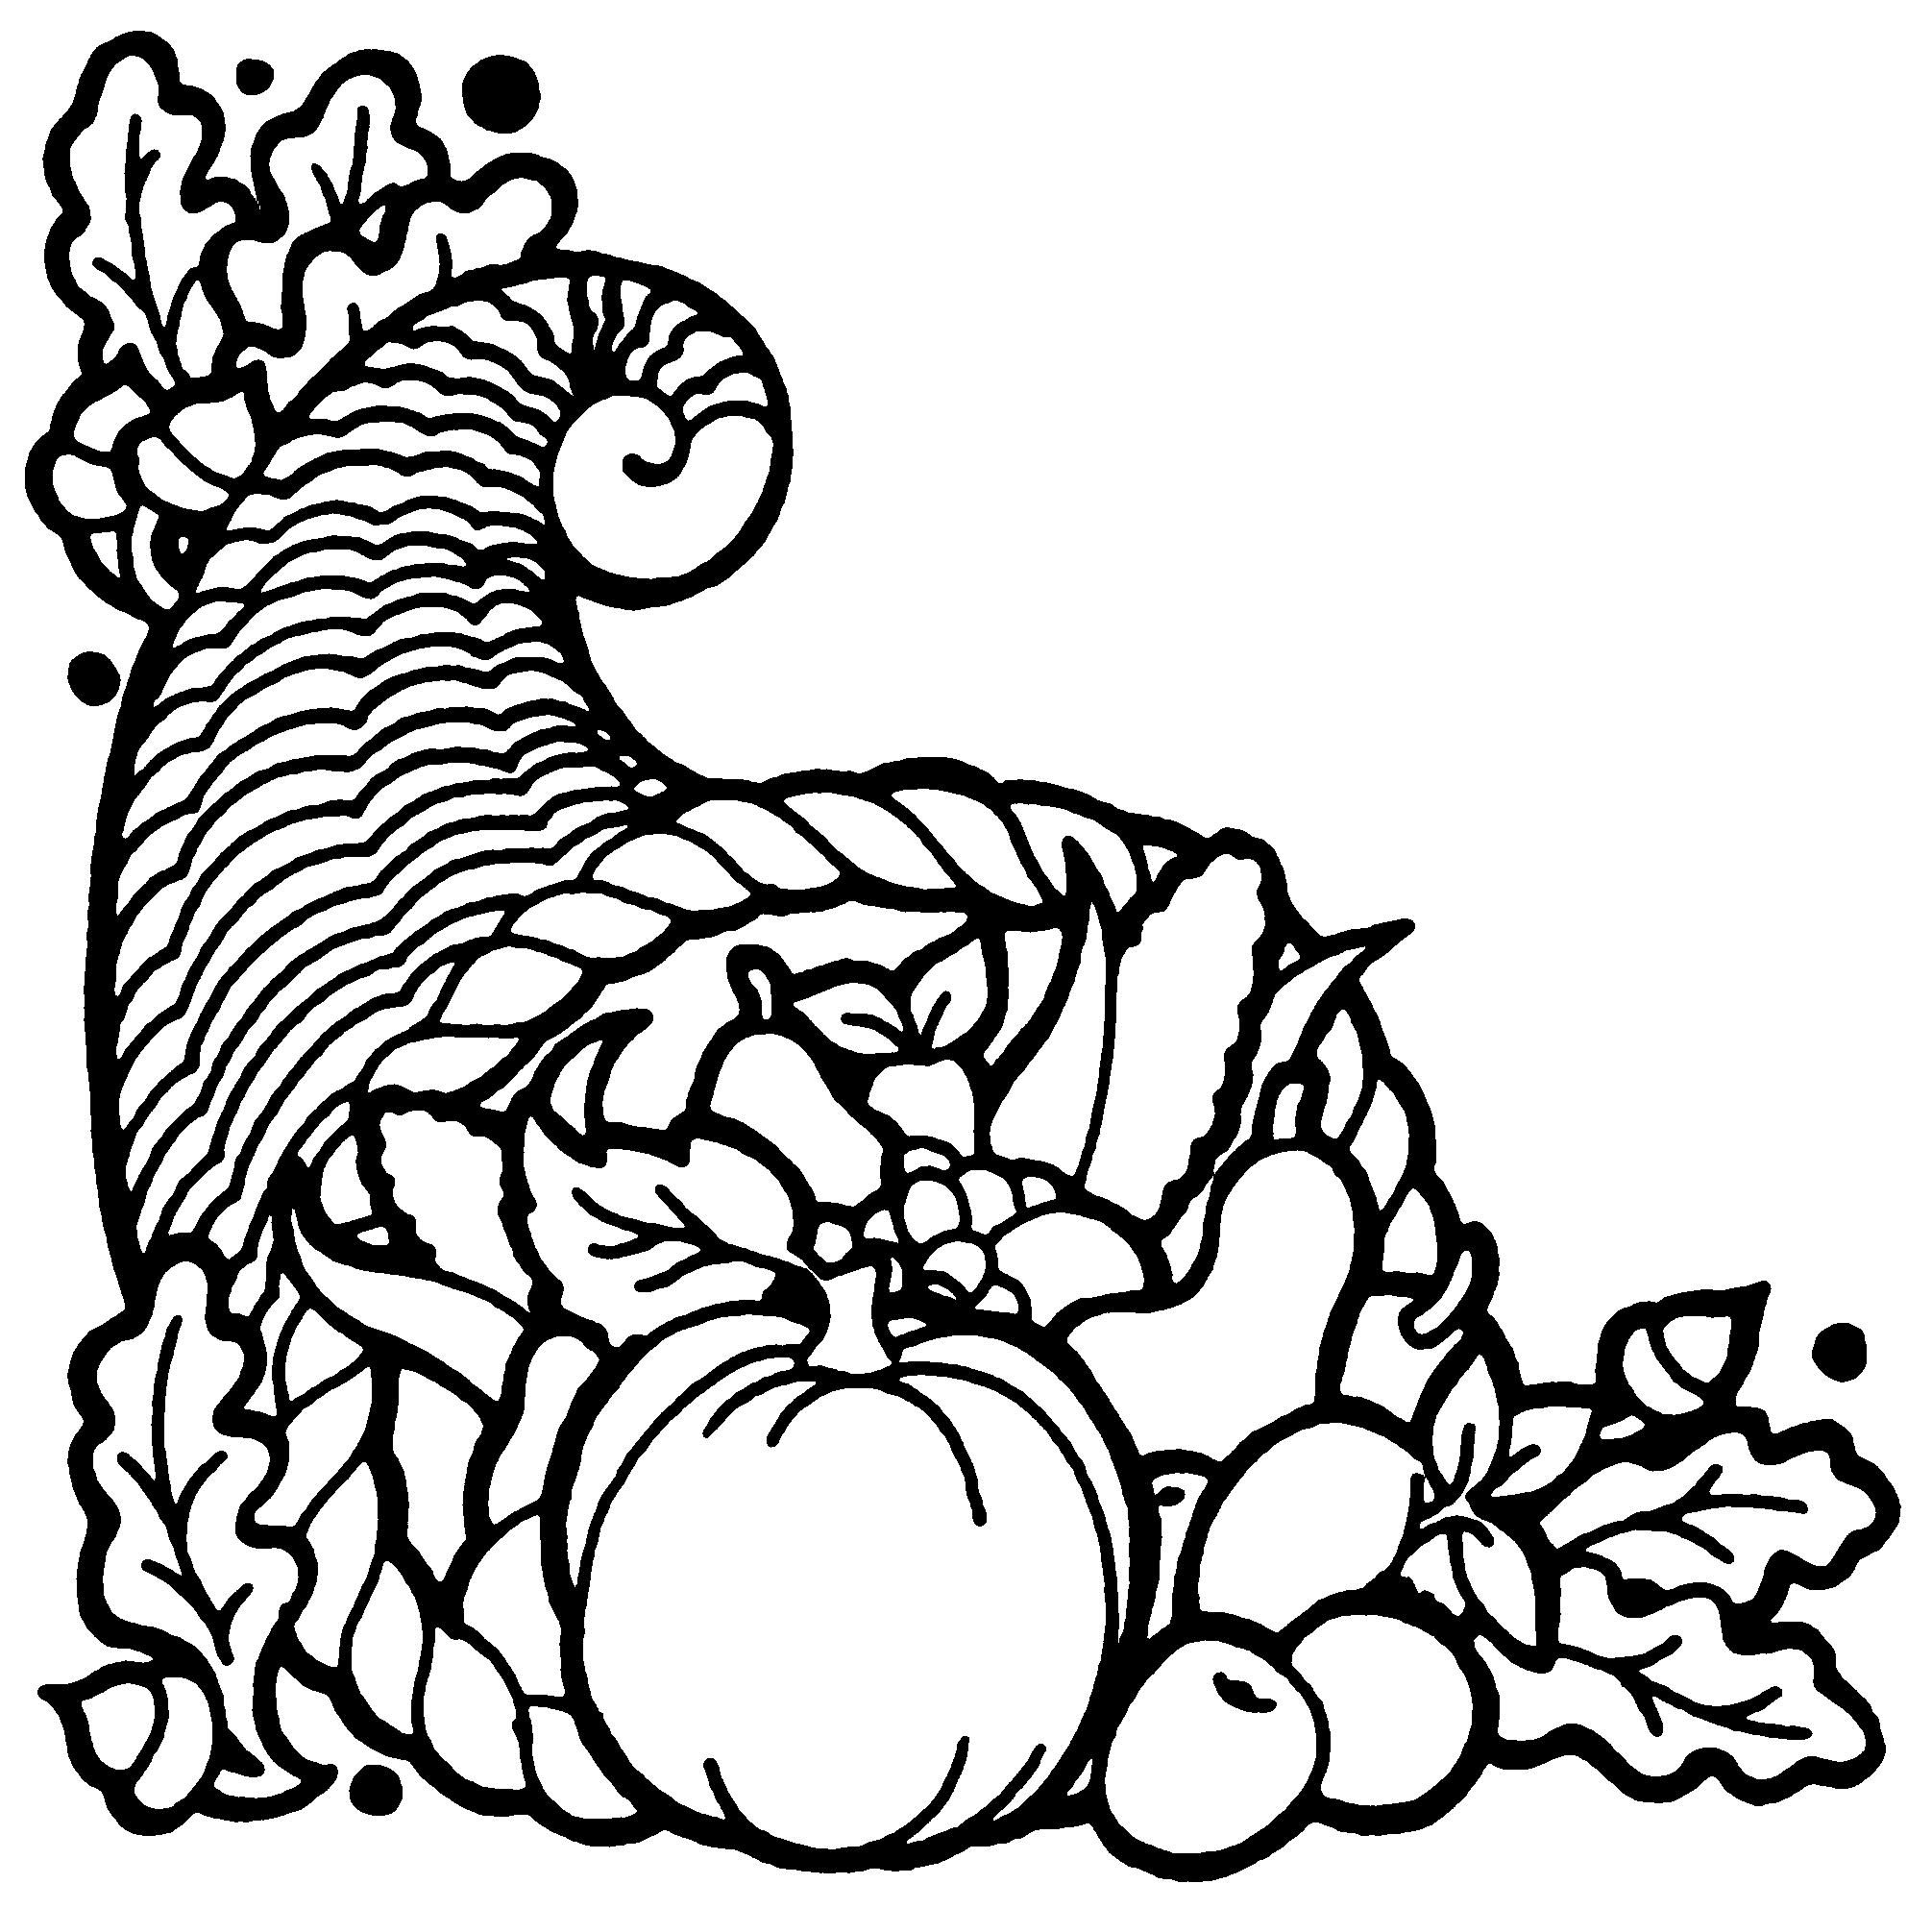 Cornucopia clipart cranberry From Birthday Tooth Easter Bunny